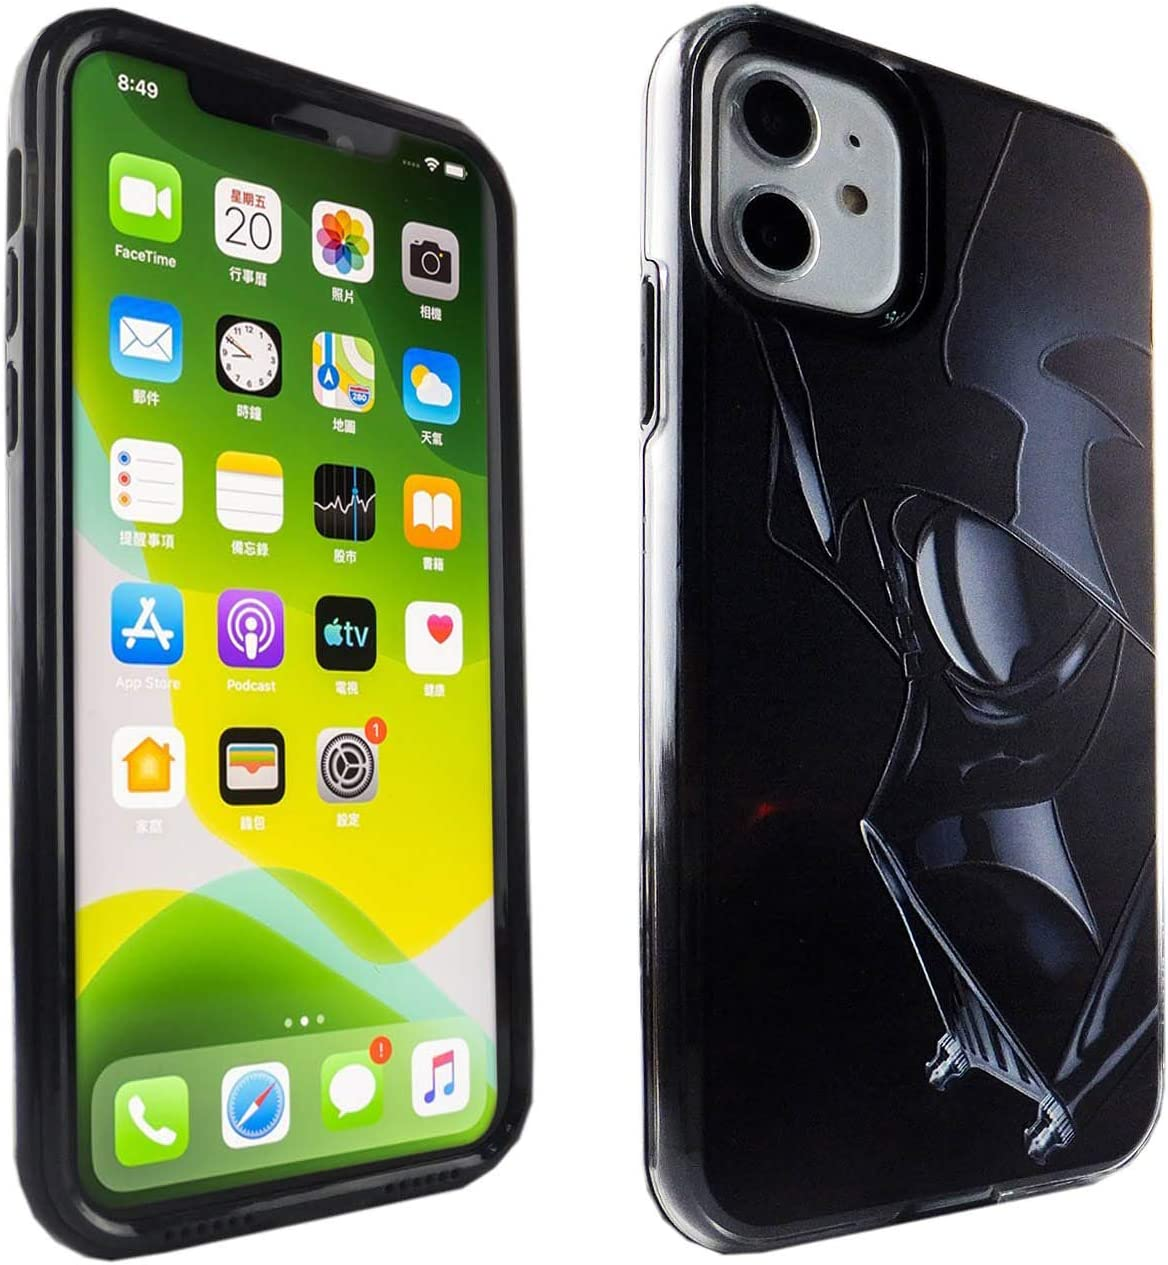 iPhone 11 Case, IMAGITOUCH TPU + PC 2 in 1 Armor Case with Flexible Shock Absorption Case & Darth Vader Design Cover Hybrid for iPhone 11 - Darth Vader Star Wars